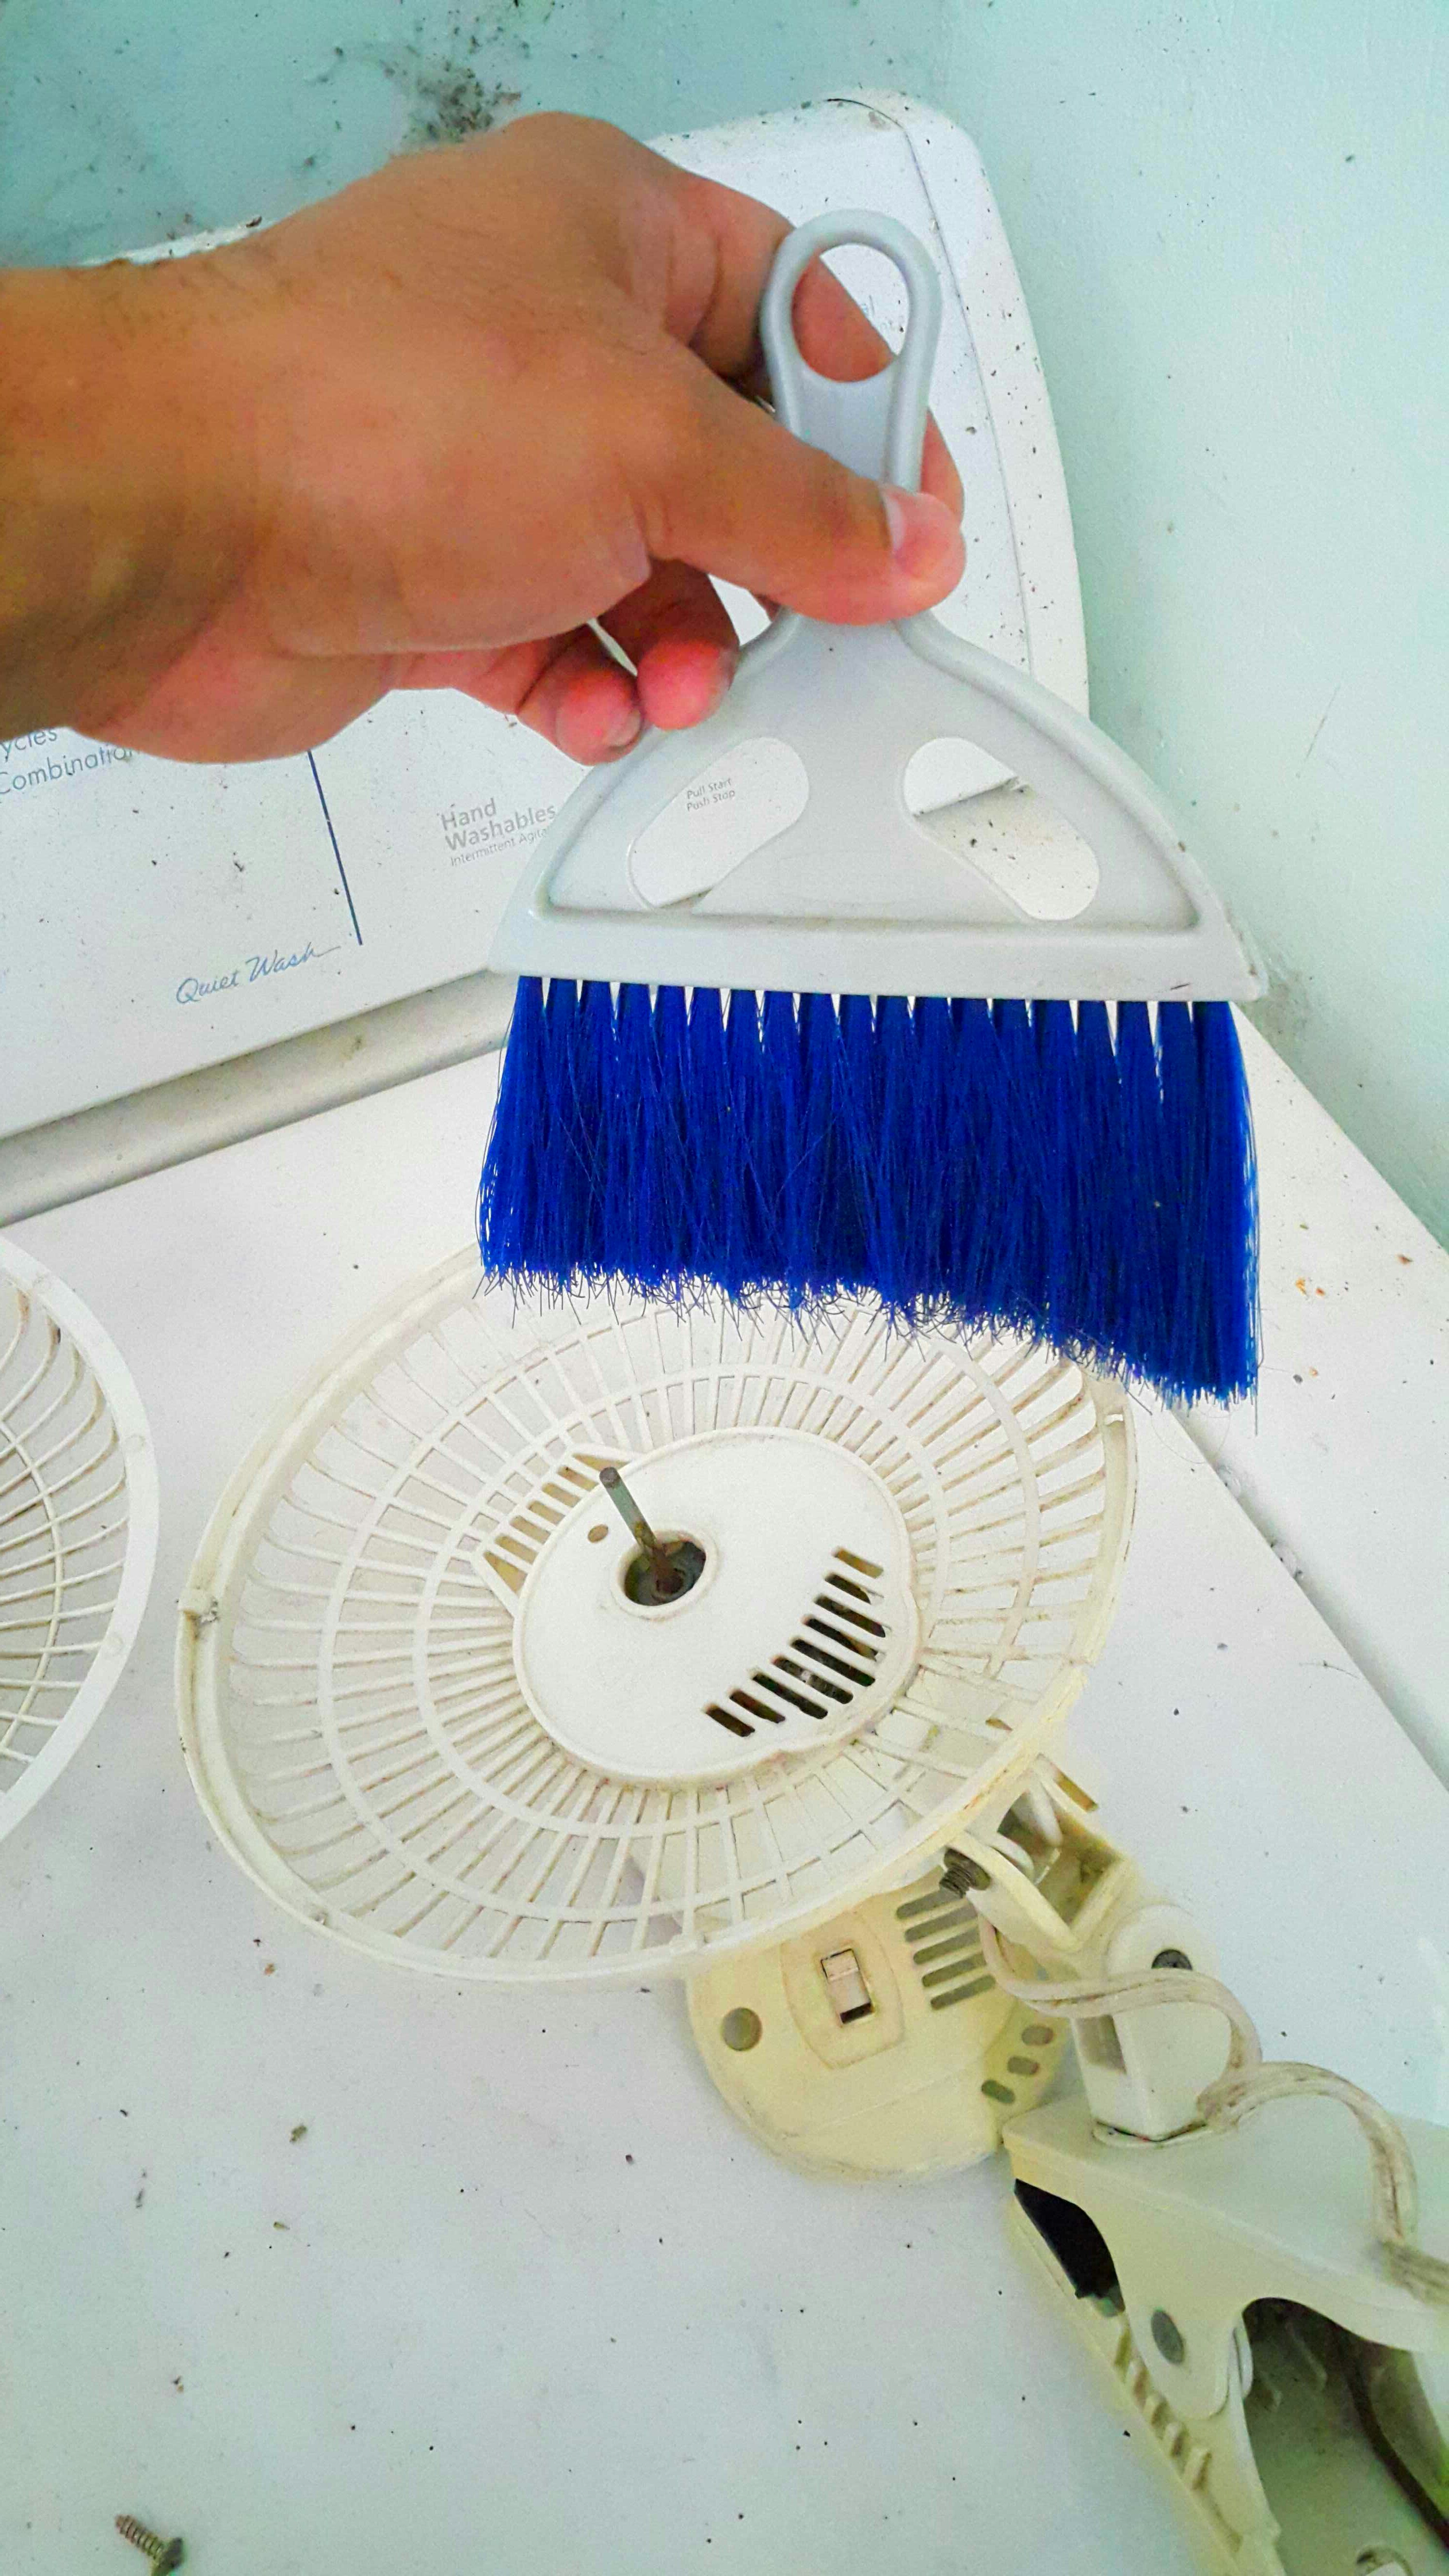 Picture of Cleaning.